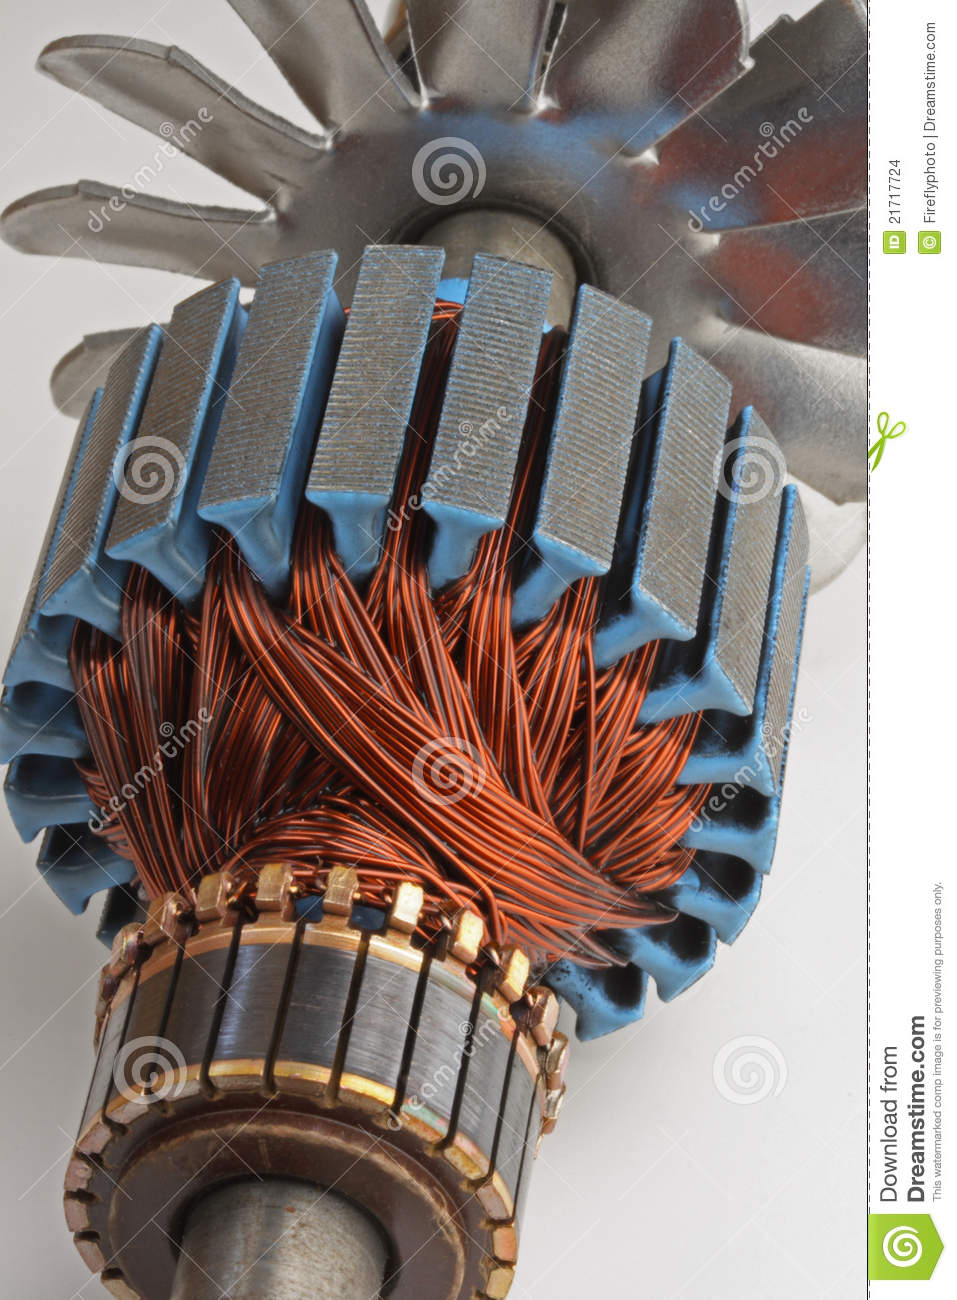 Phrase copper strip motor winding that's